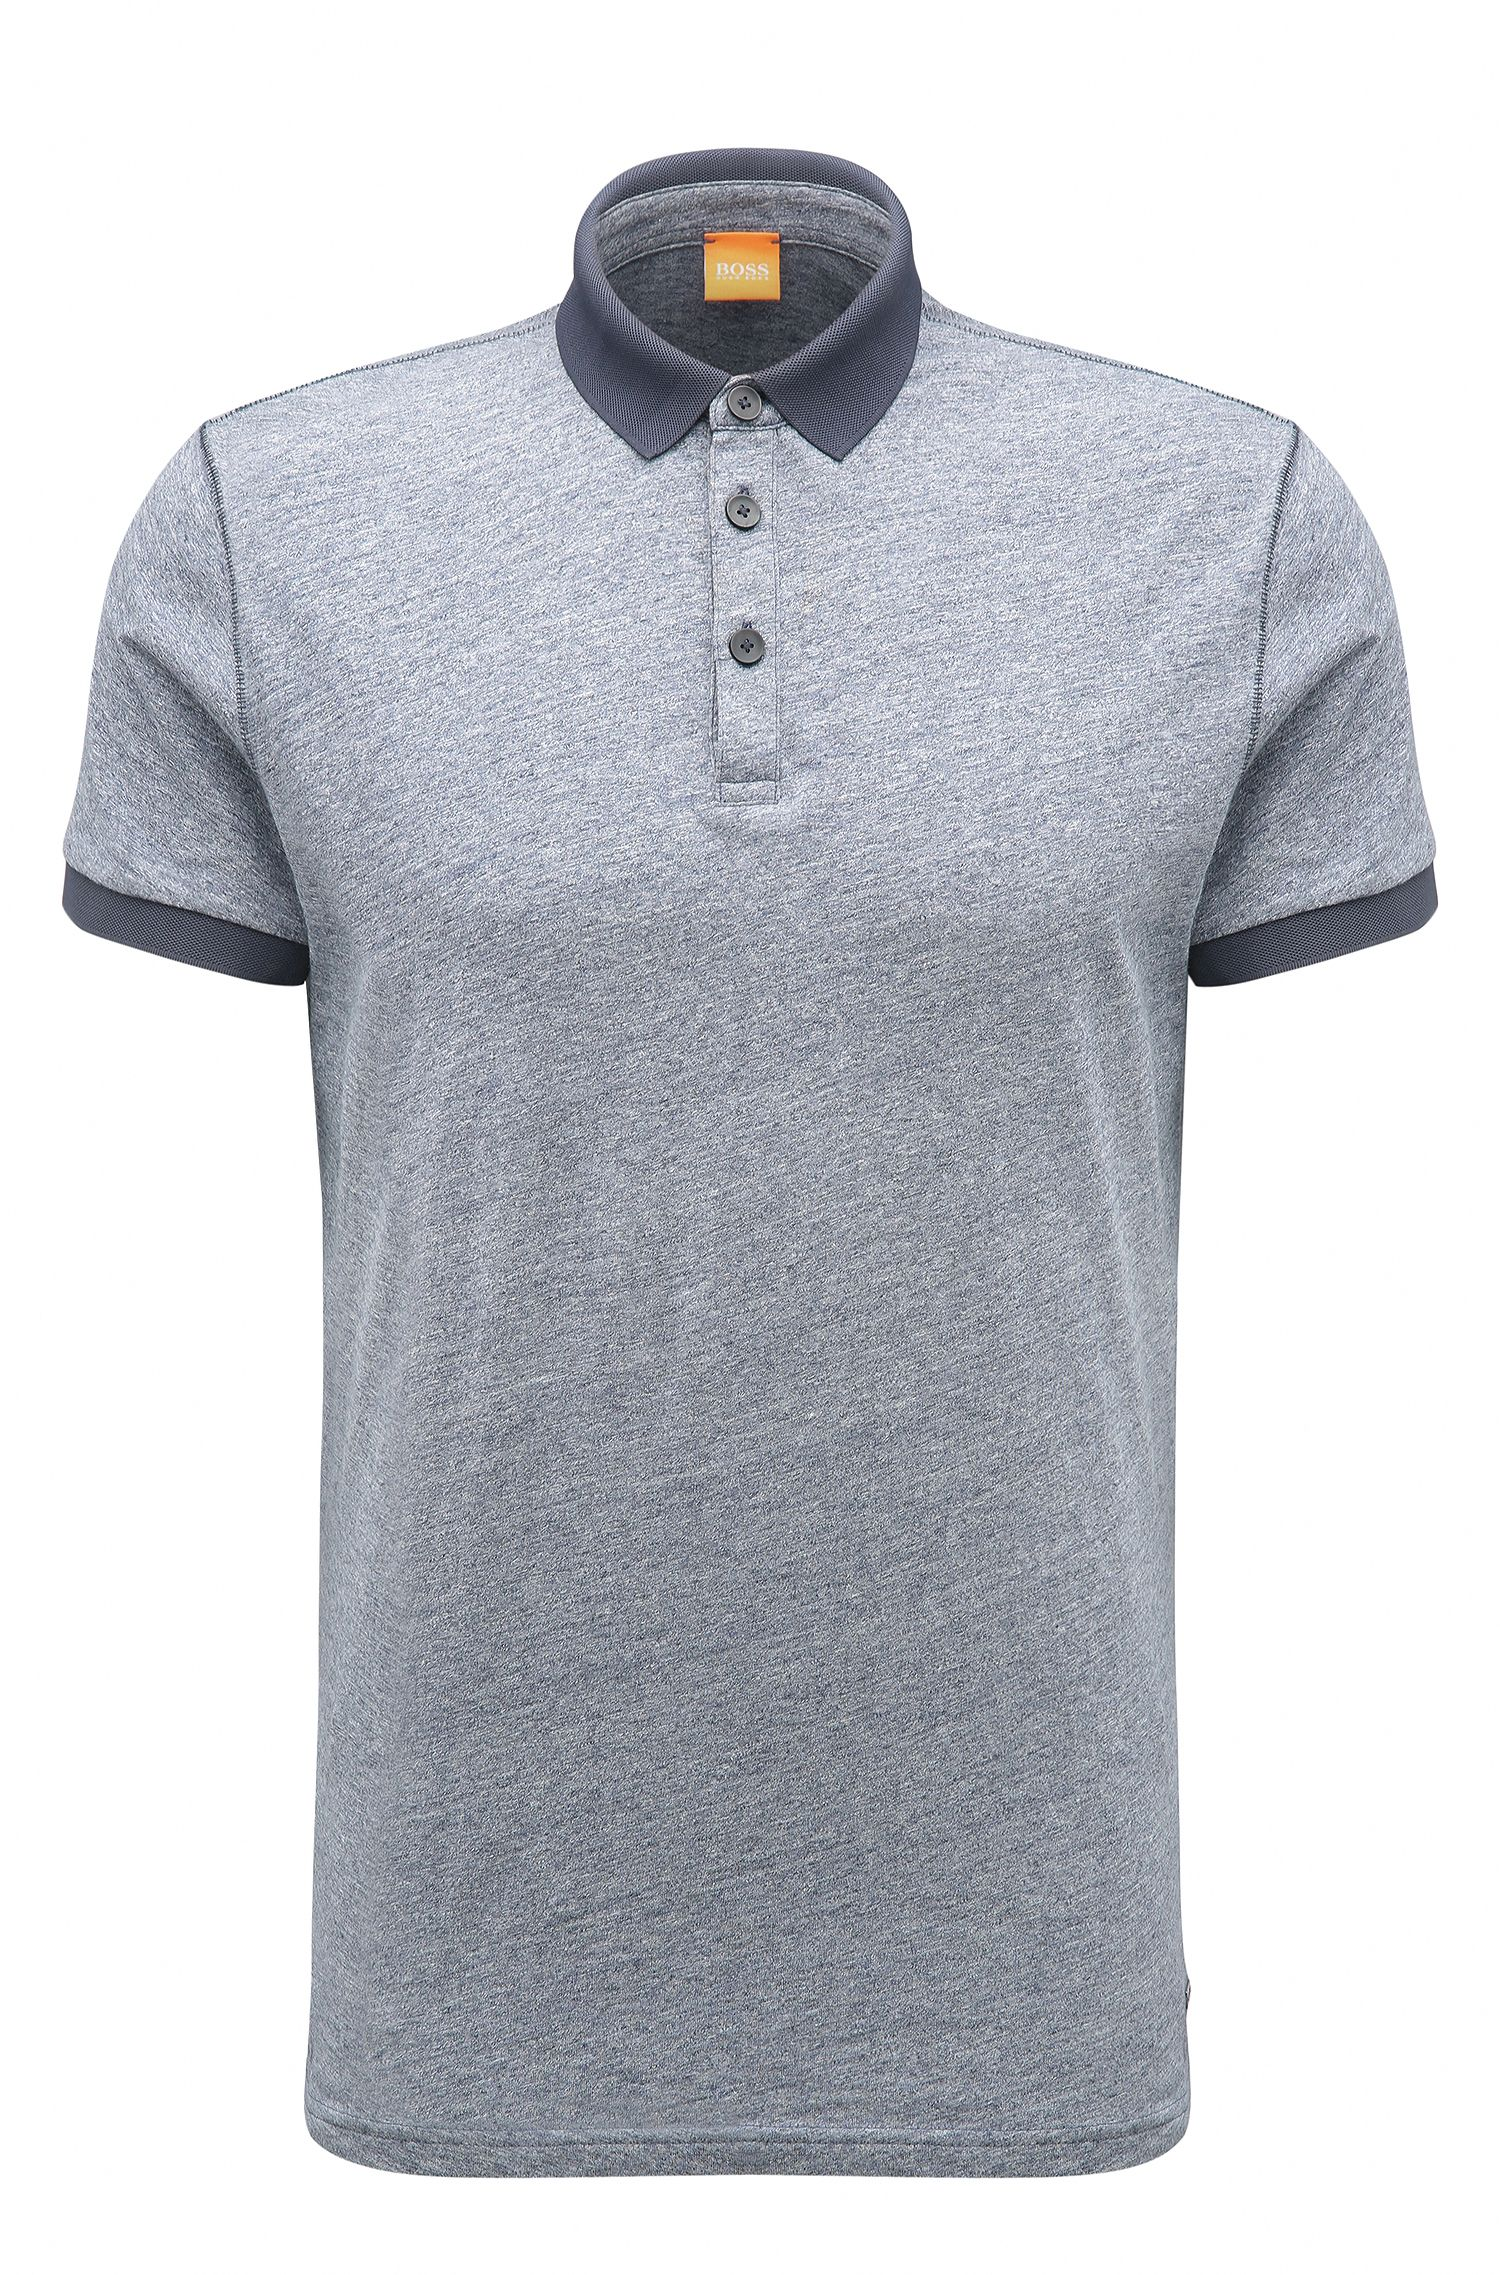 Melange Cotton Polo Shirt, Regular Fit | Performer